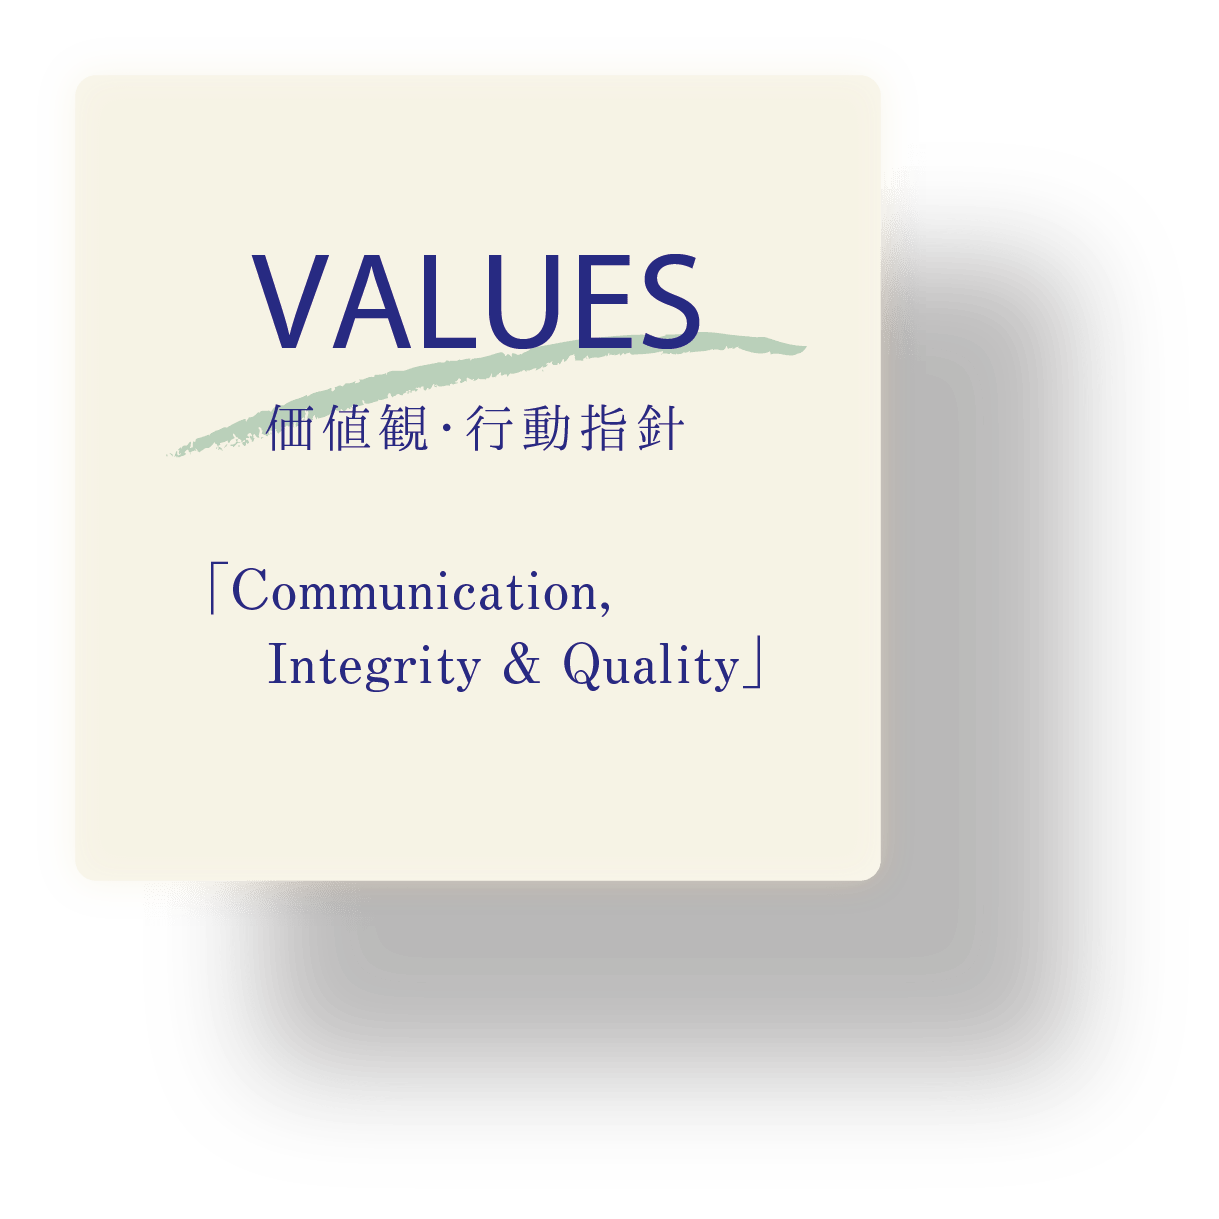 VALUES 価値観・行動指針「Communication, Integrity & Quality」